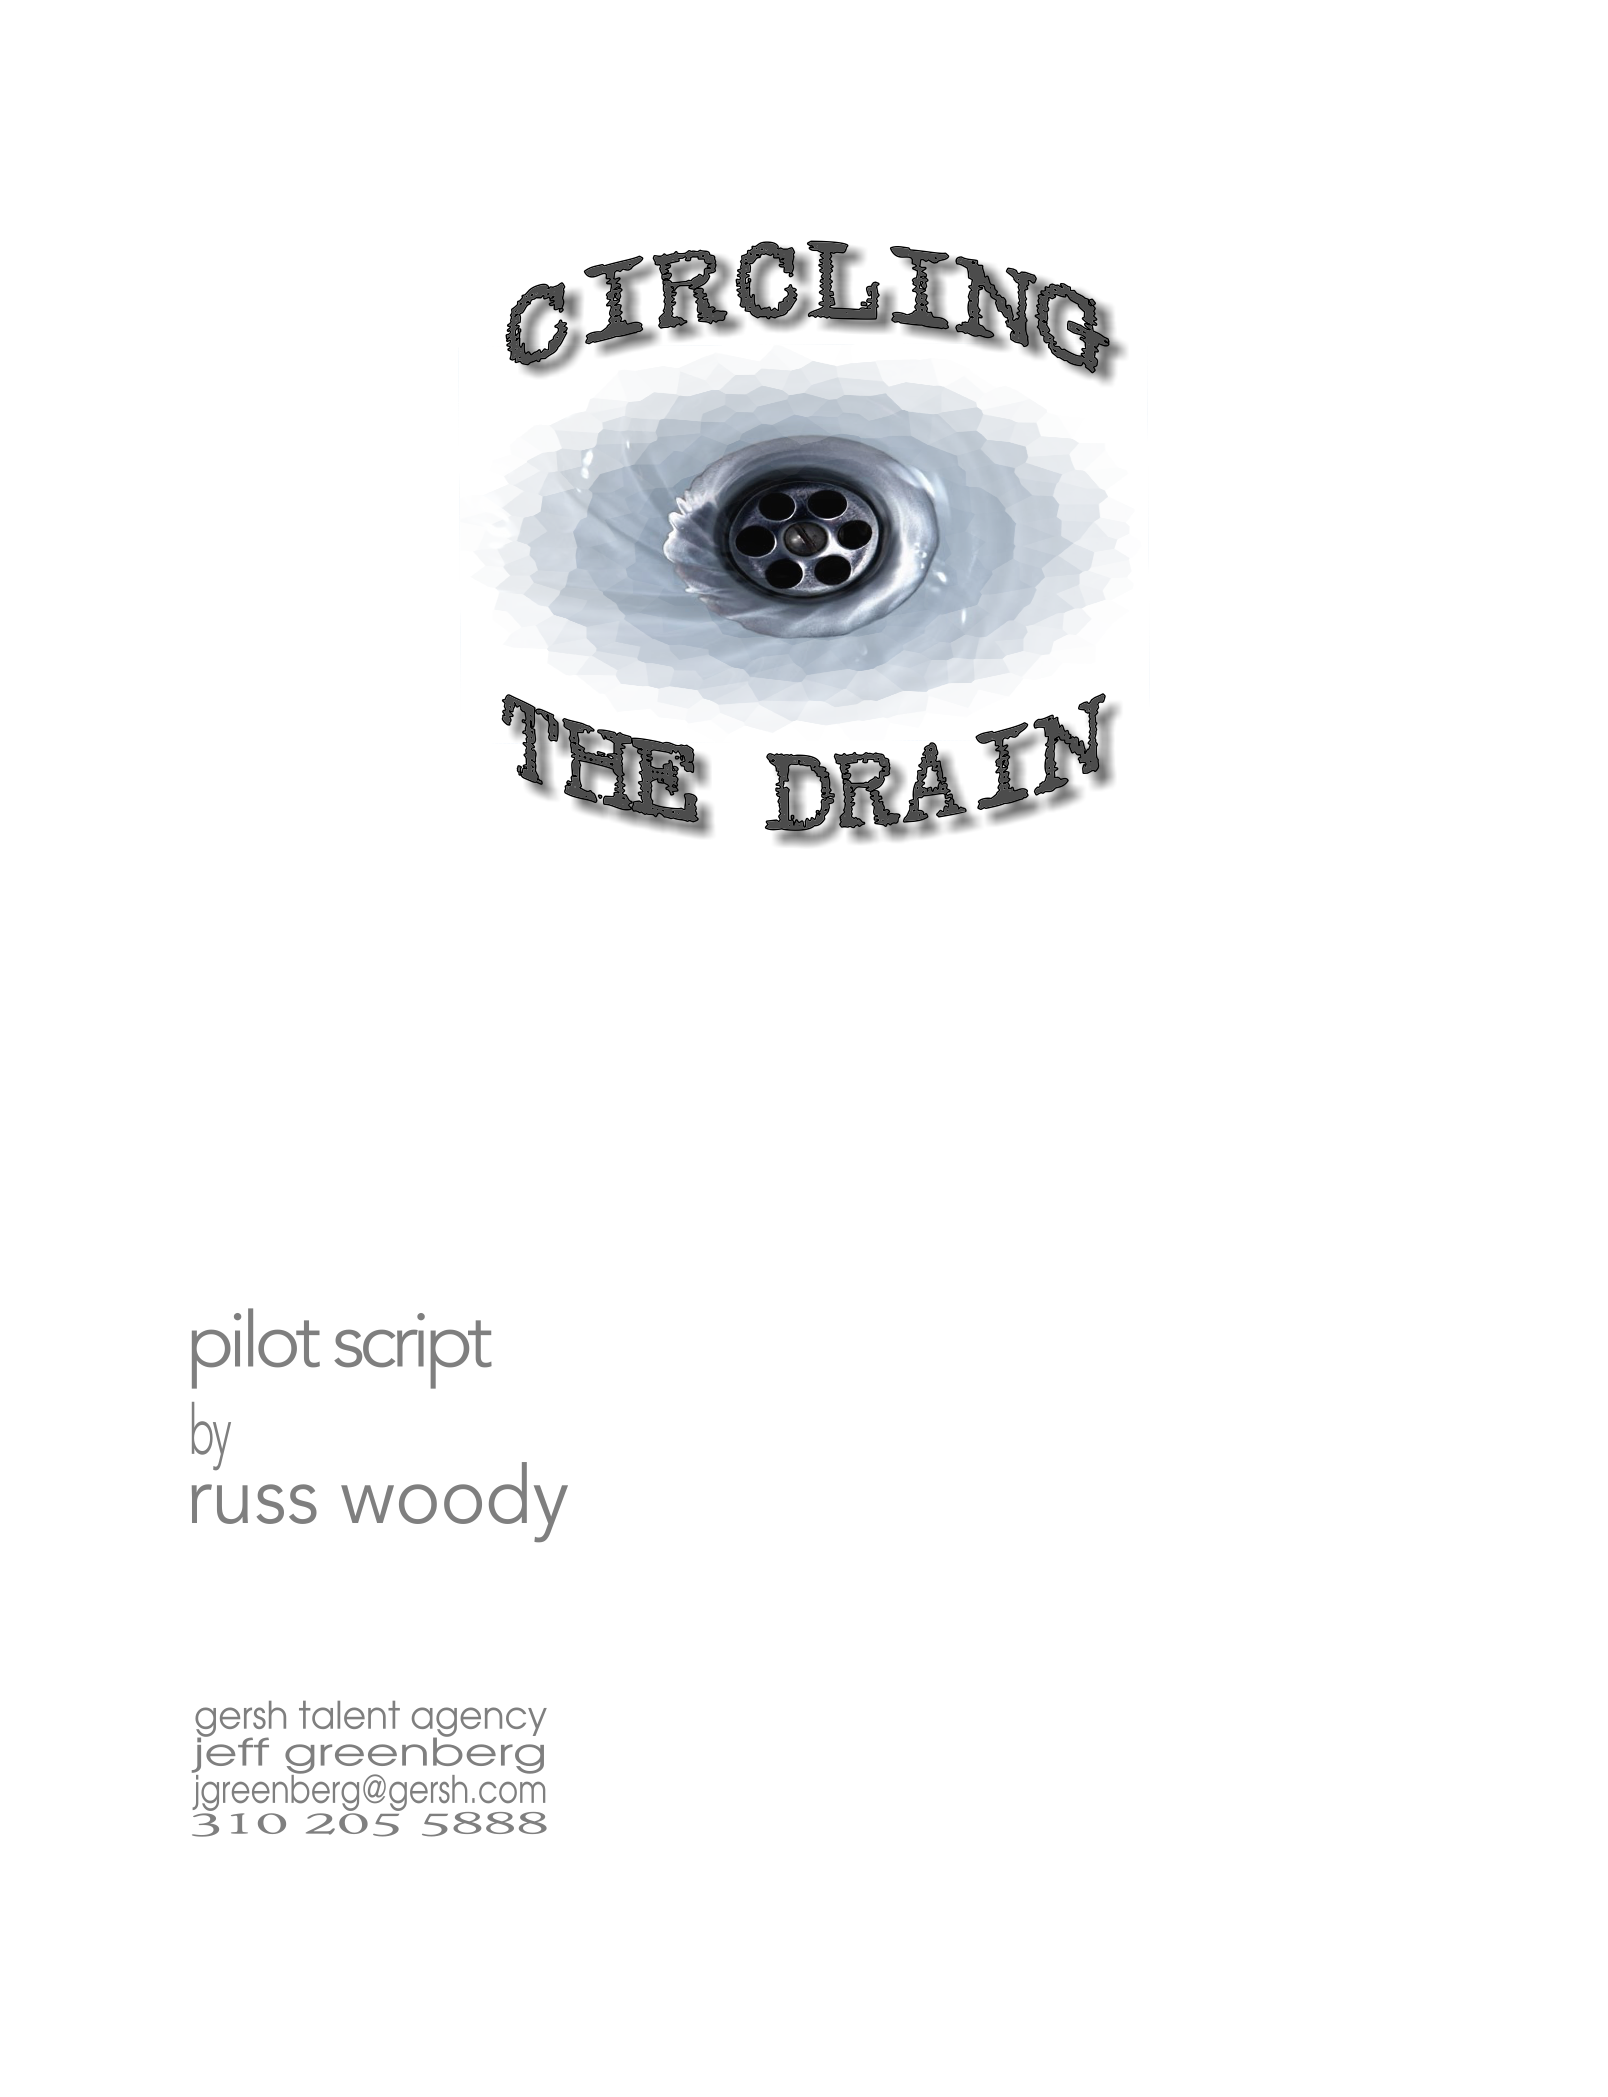 CLICK HERE to CIRCLE THE DRAIN